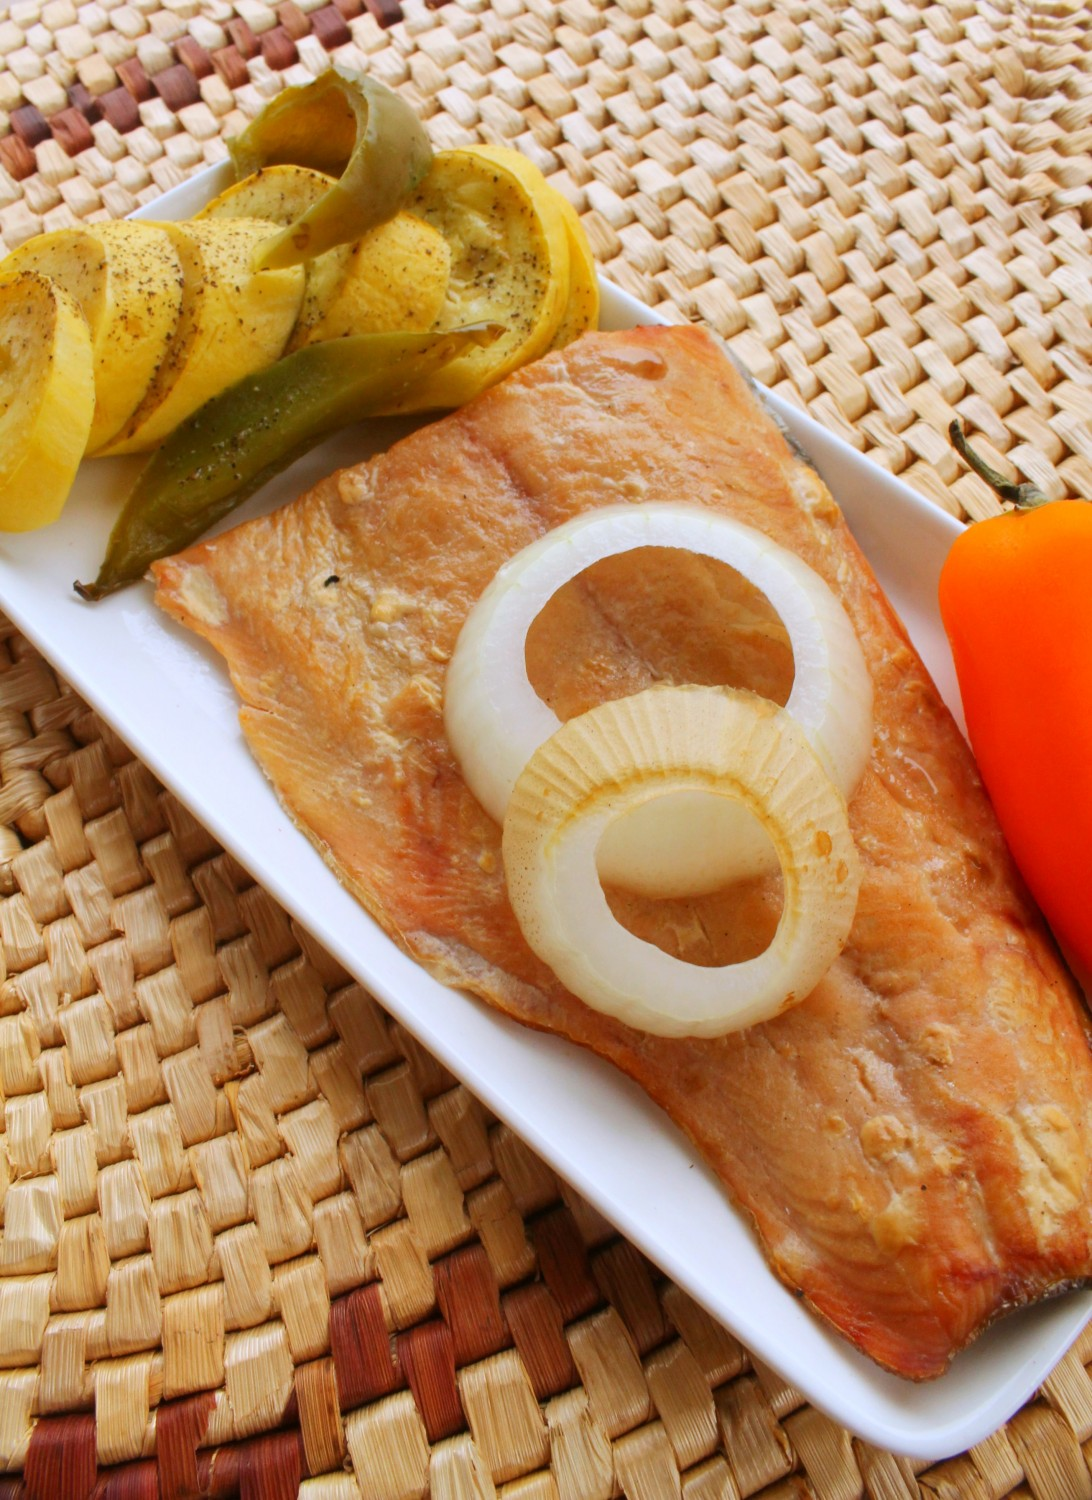 This grilled salmon is perfect for a light and healthy summer meal!